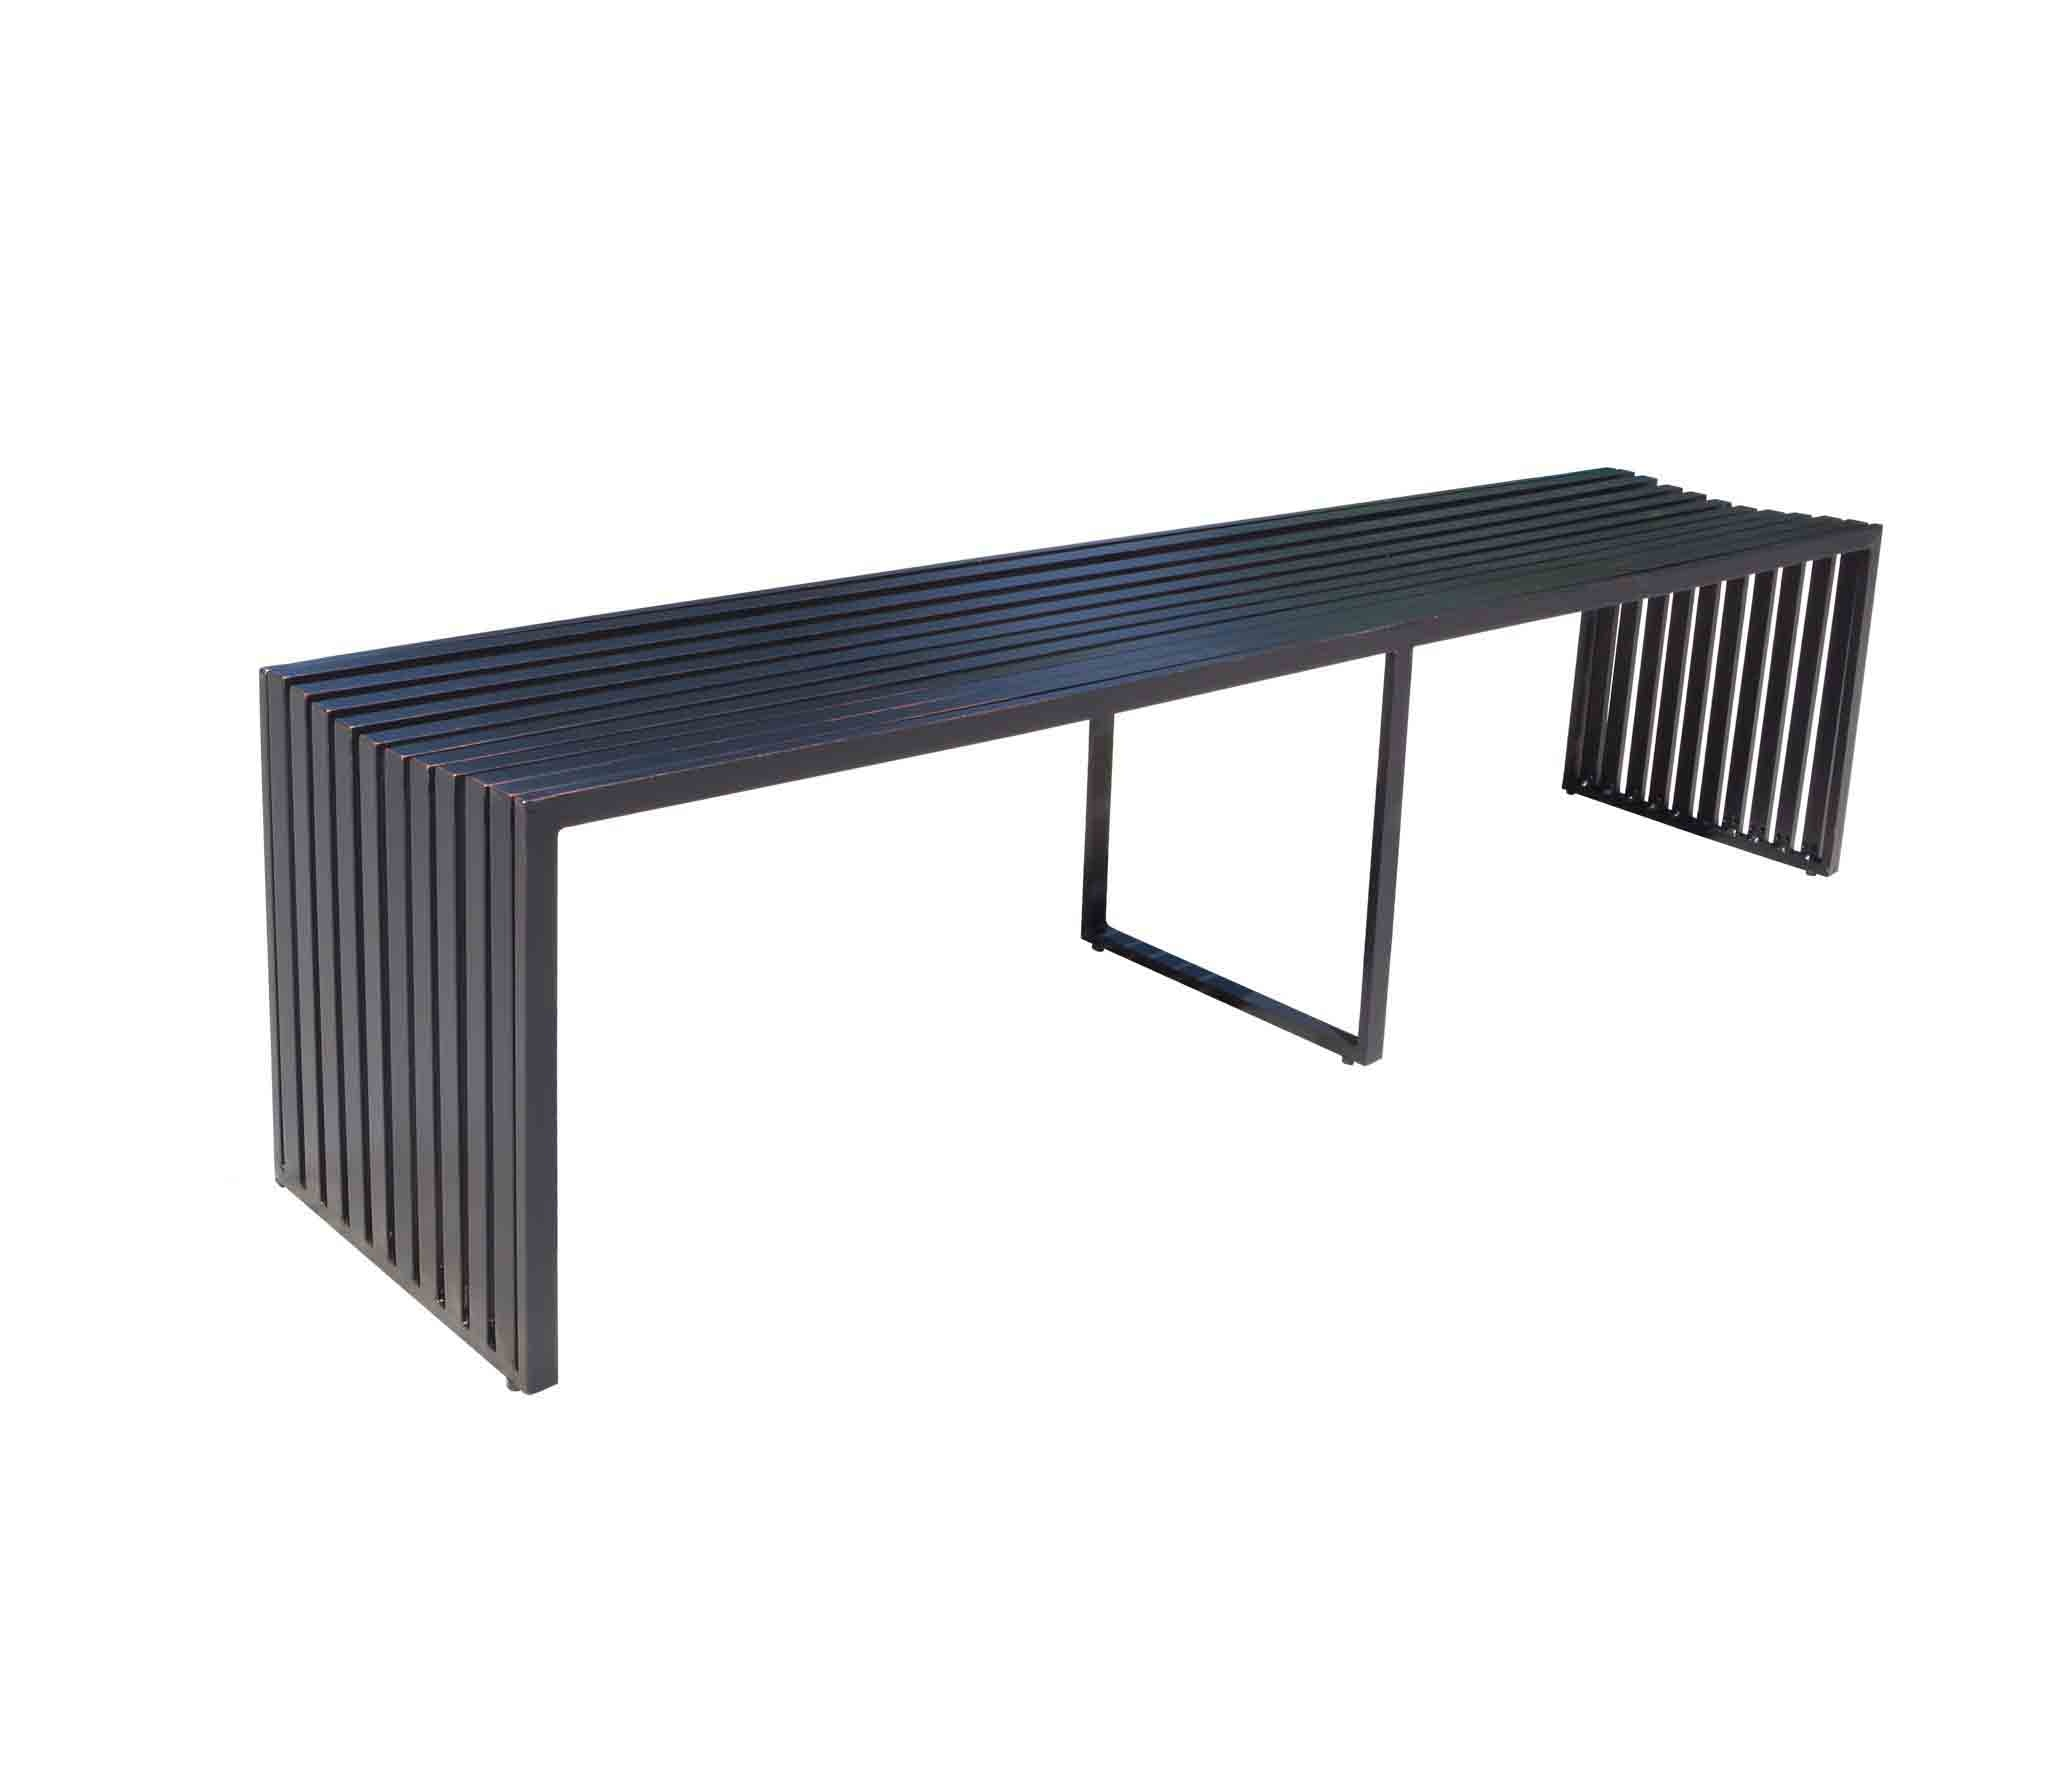 CabanaCoast Furniture Oasis 60 Dining Bench CabanaCoast Furniture 30118